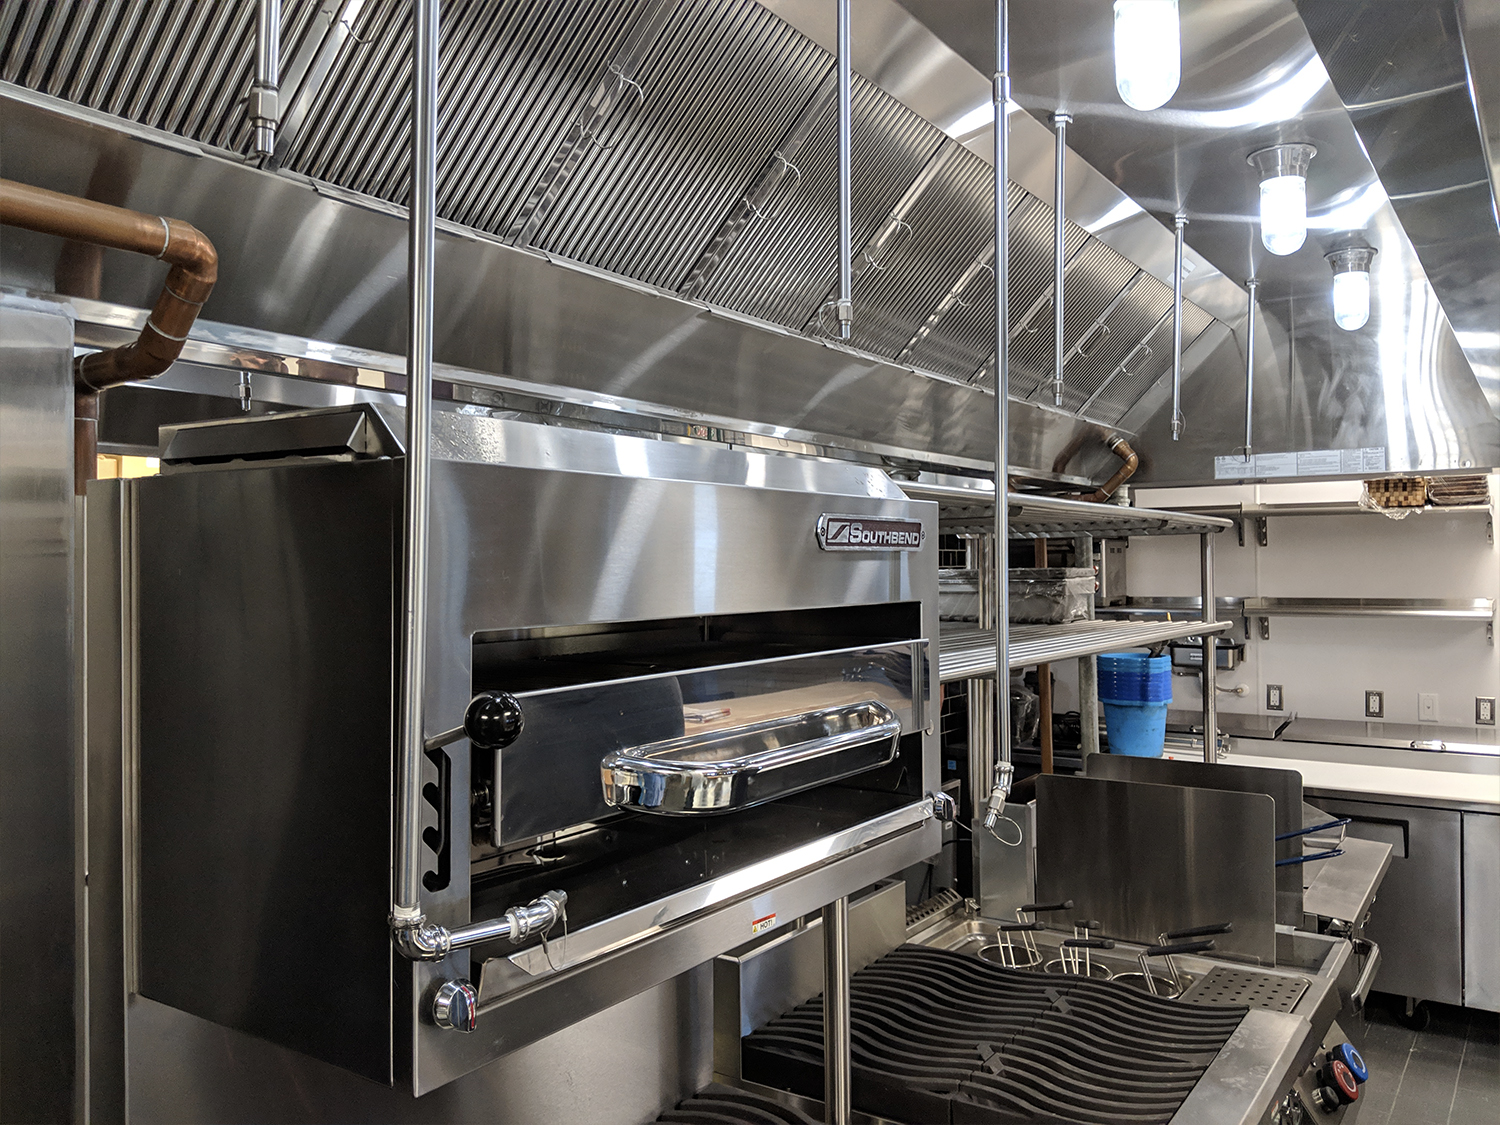 Southbend Commercial Kitchen Oven